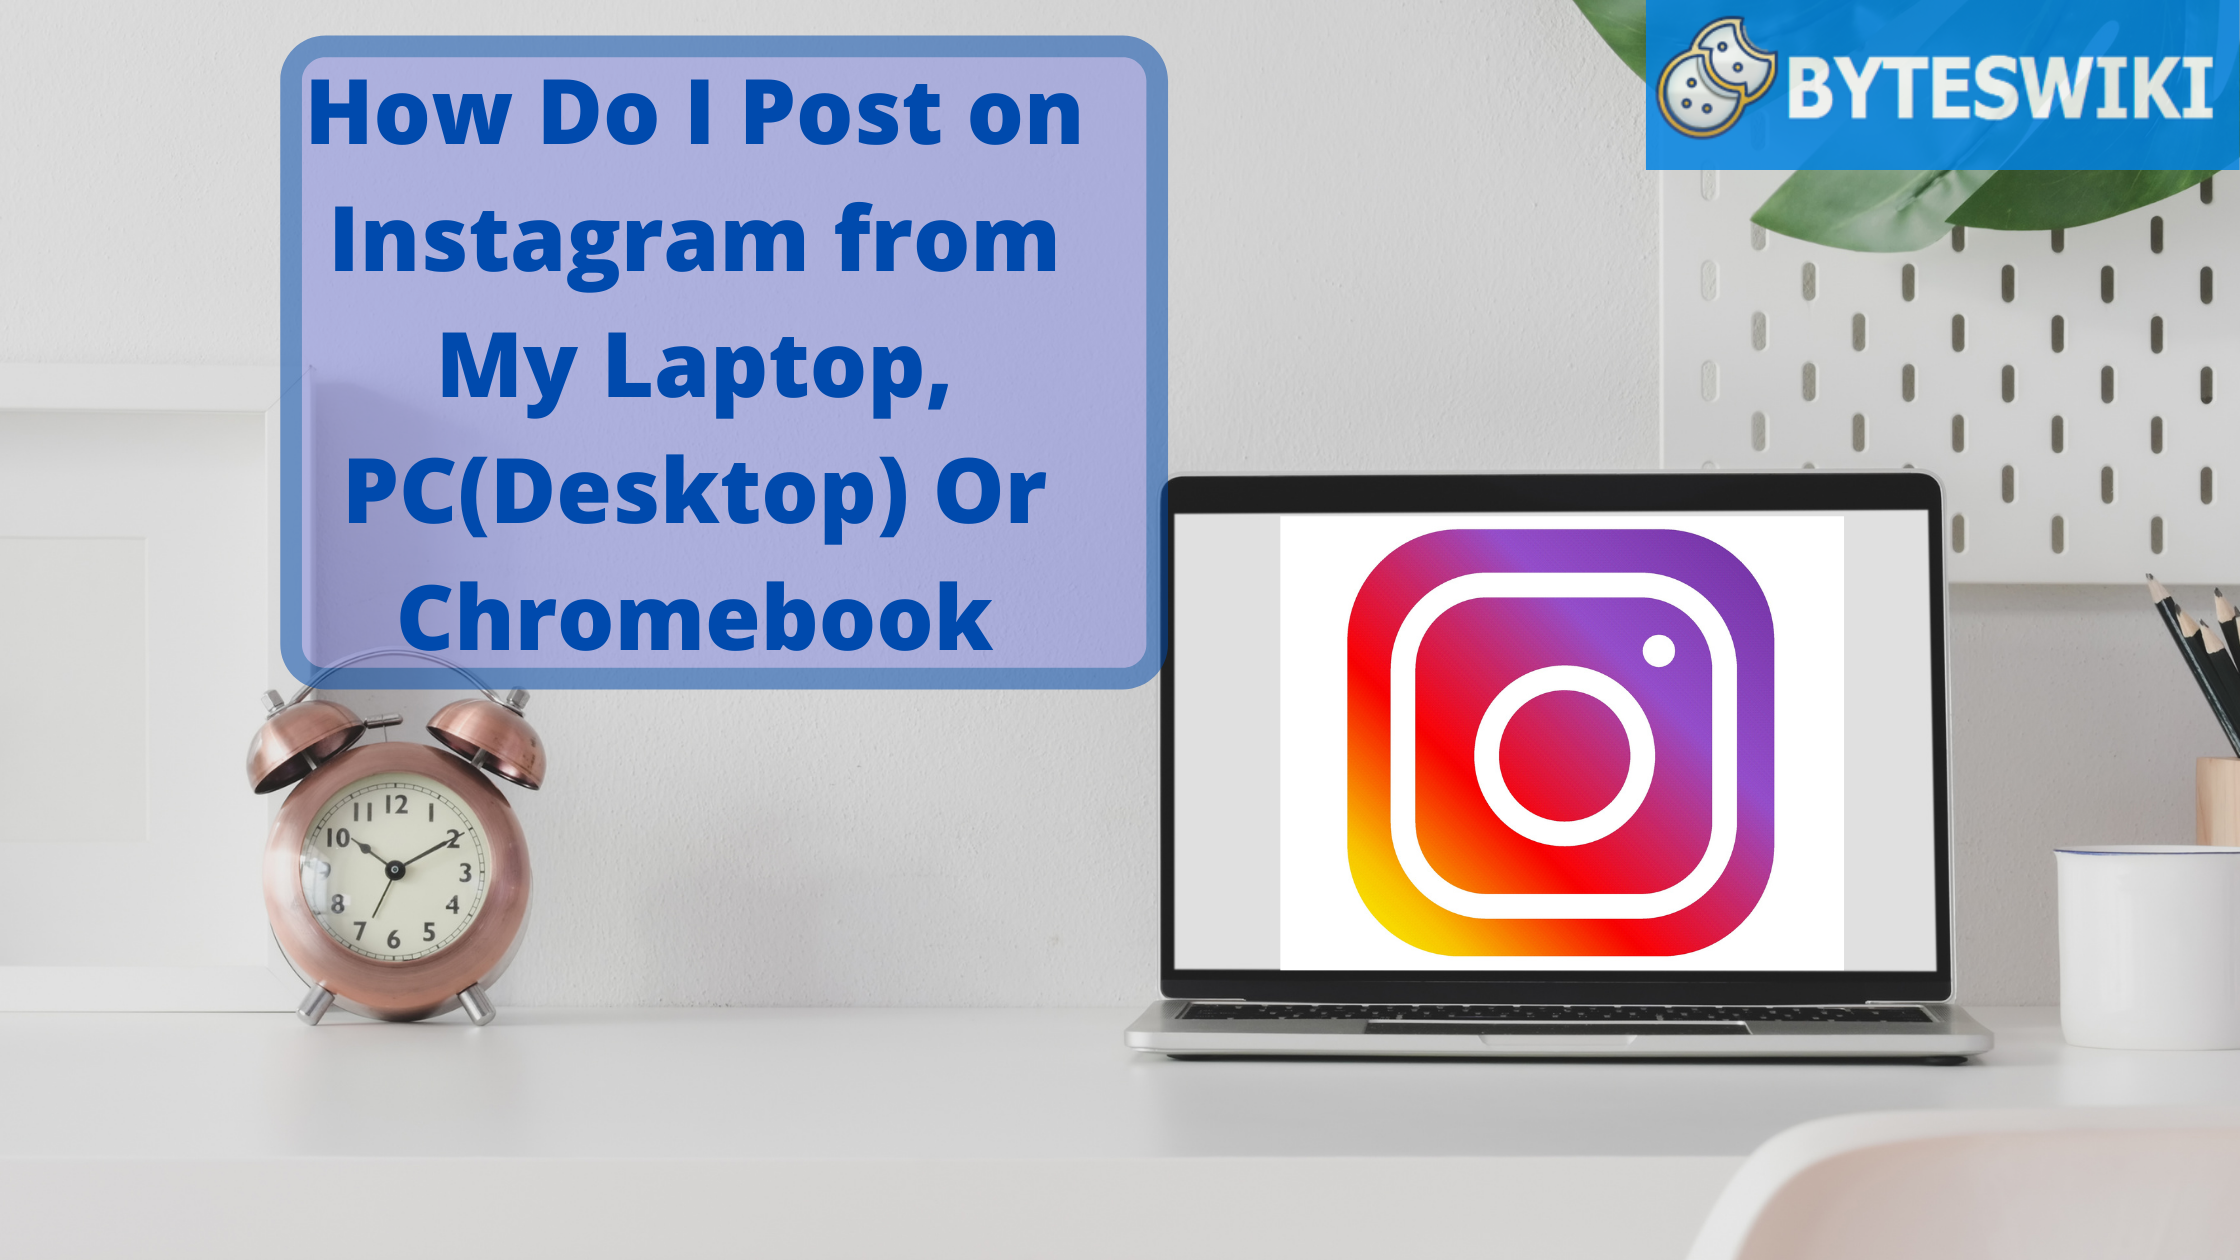 How Do I Post on Instagram from My Laptop, PC(Desktop) Or Chromebook